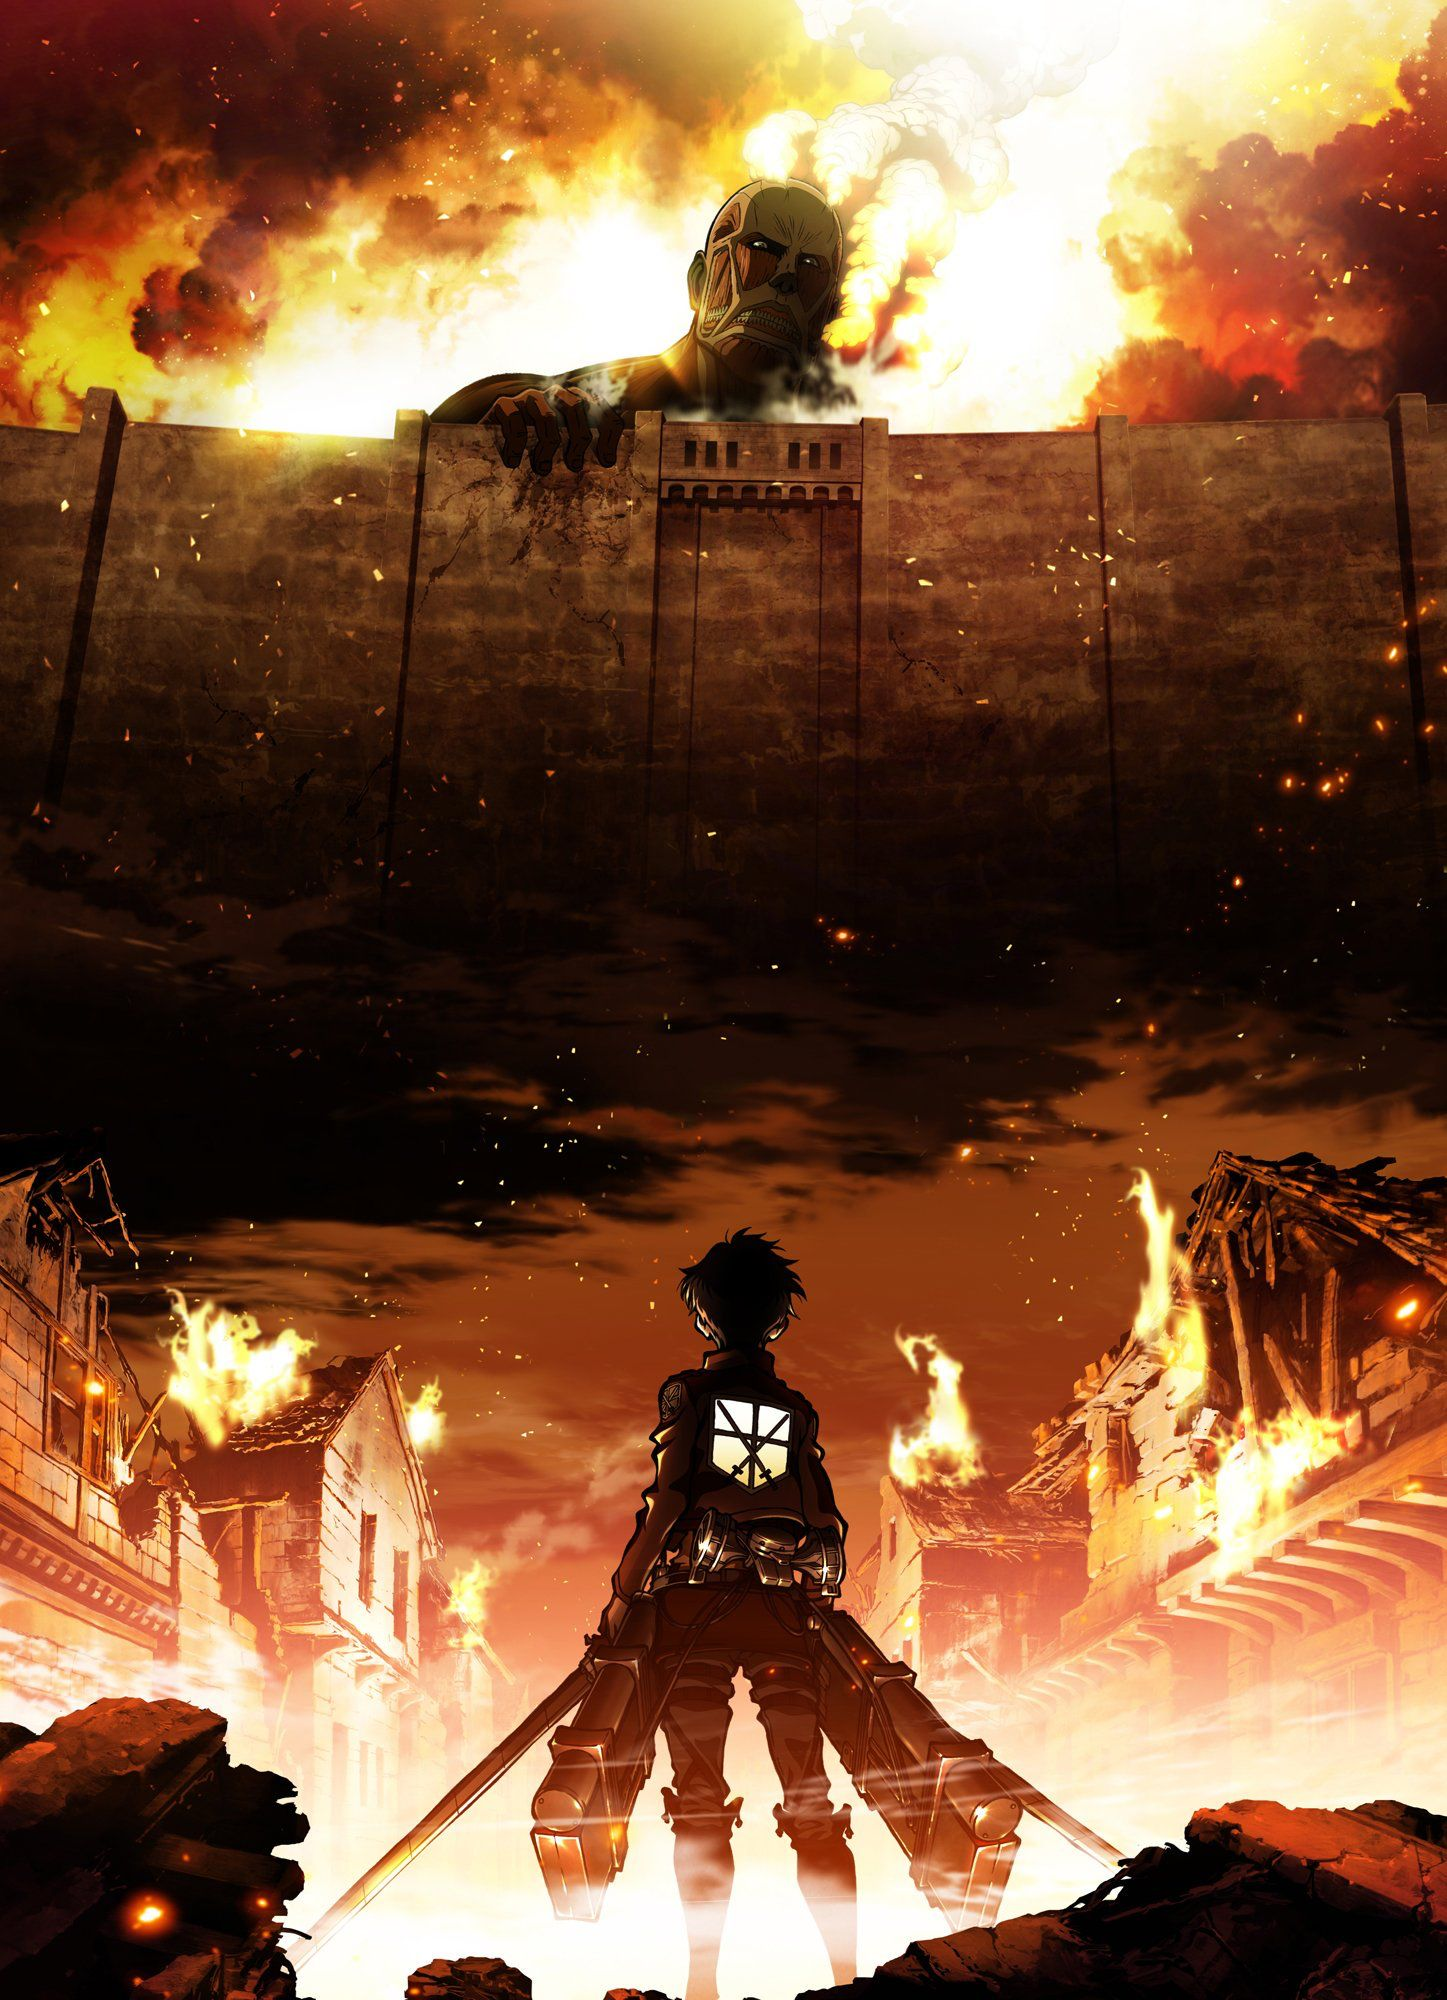 Attack on Titan Season 1 Key Art